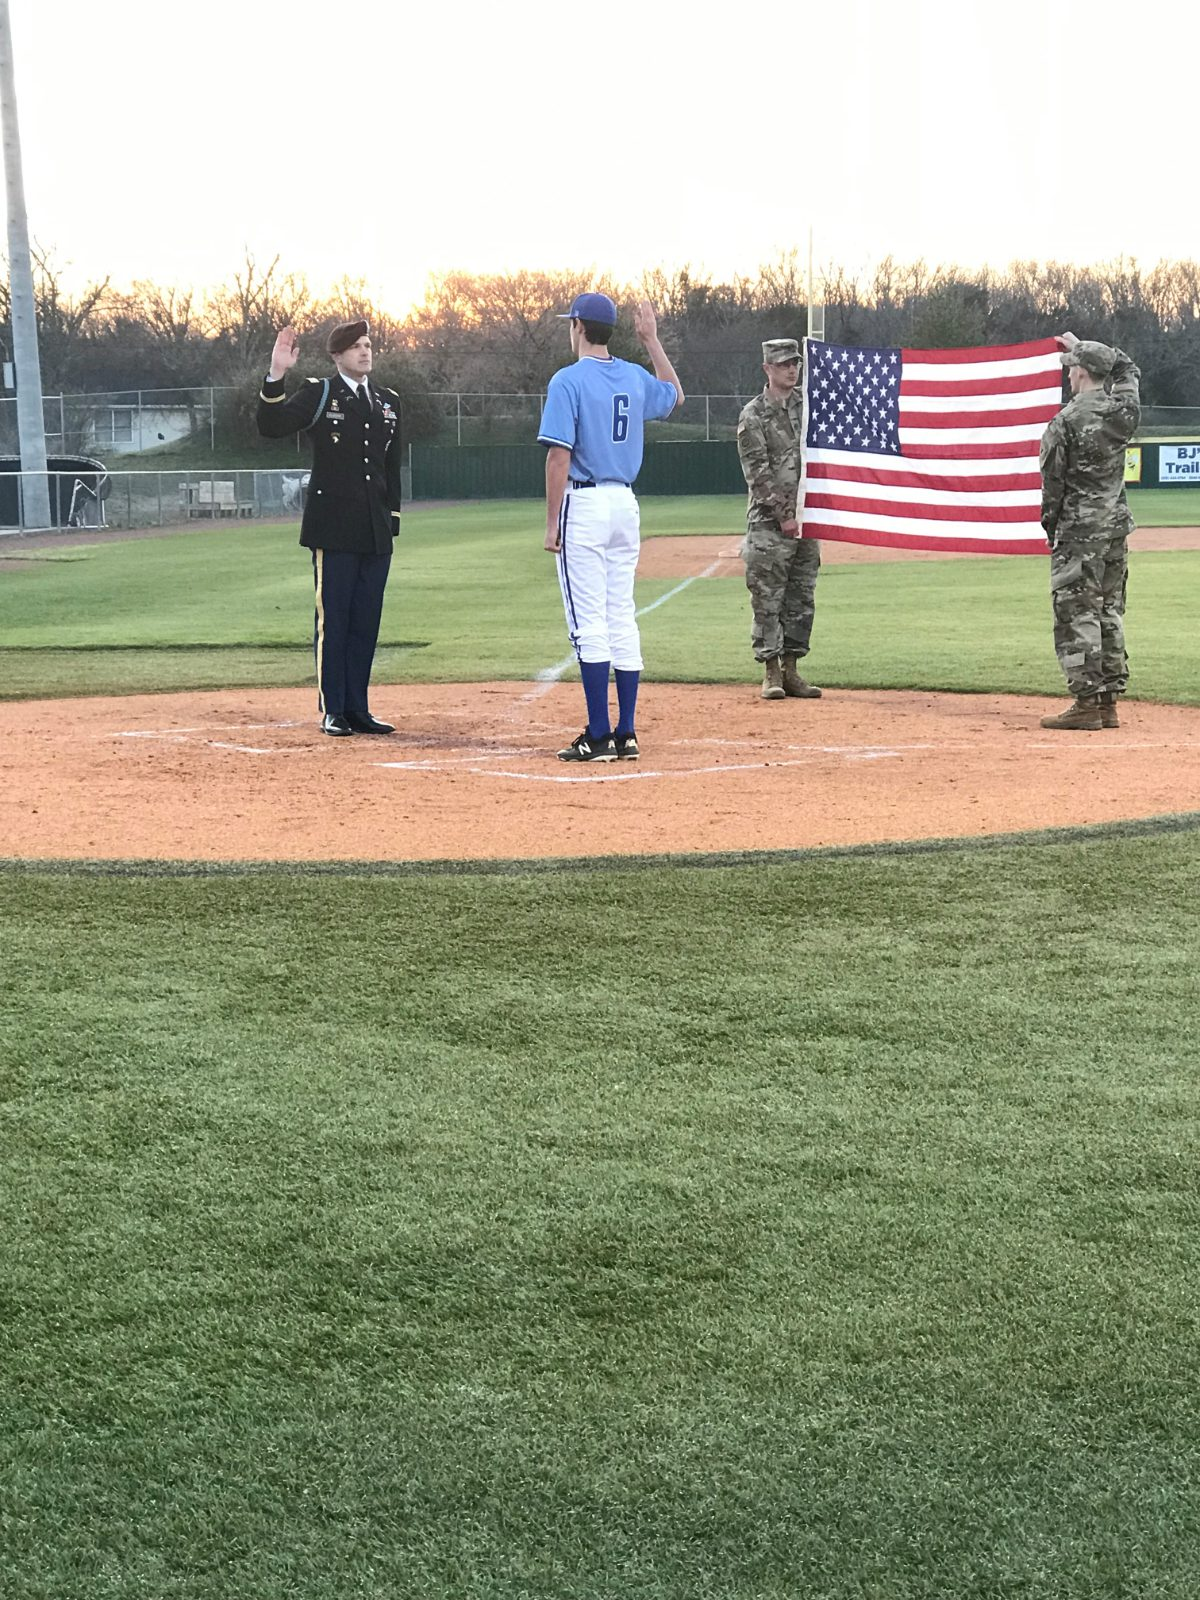 LHS Pitcher, Wyatt Simmons, sworn into the US Army just before the 1st pitch